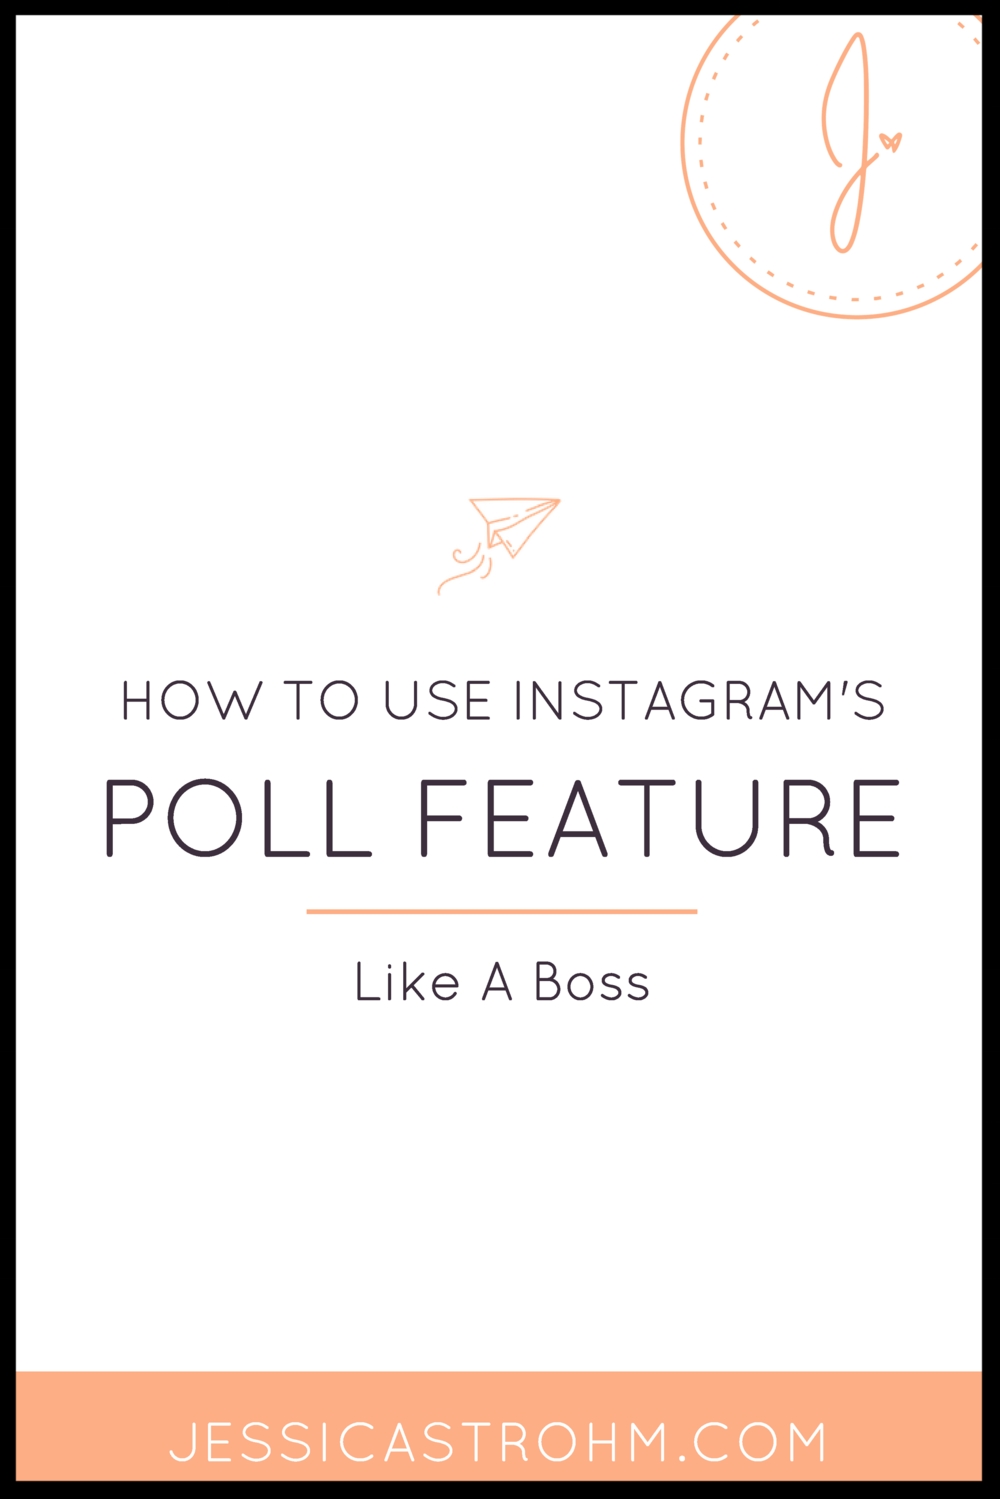 Creative ways to use Instagram's poll feature in your creative business.